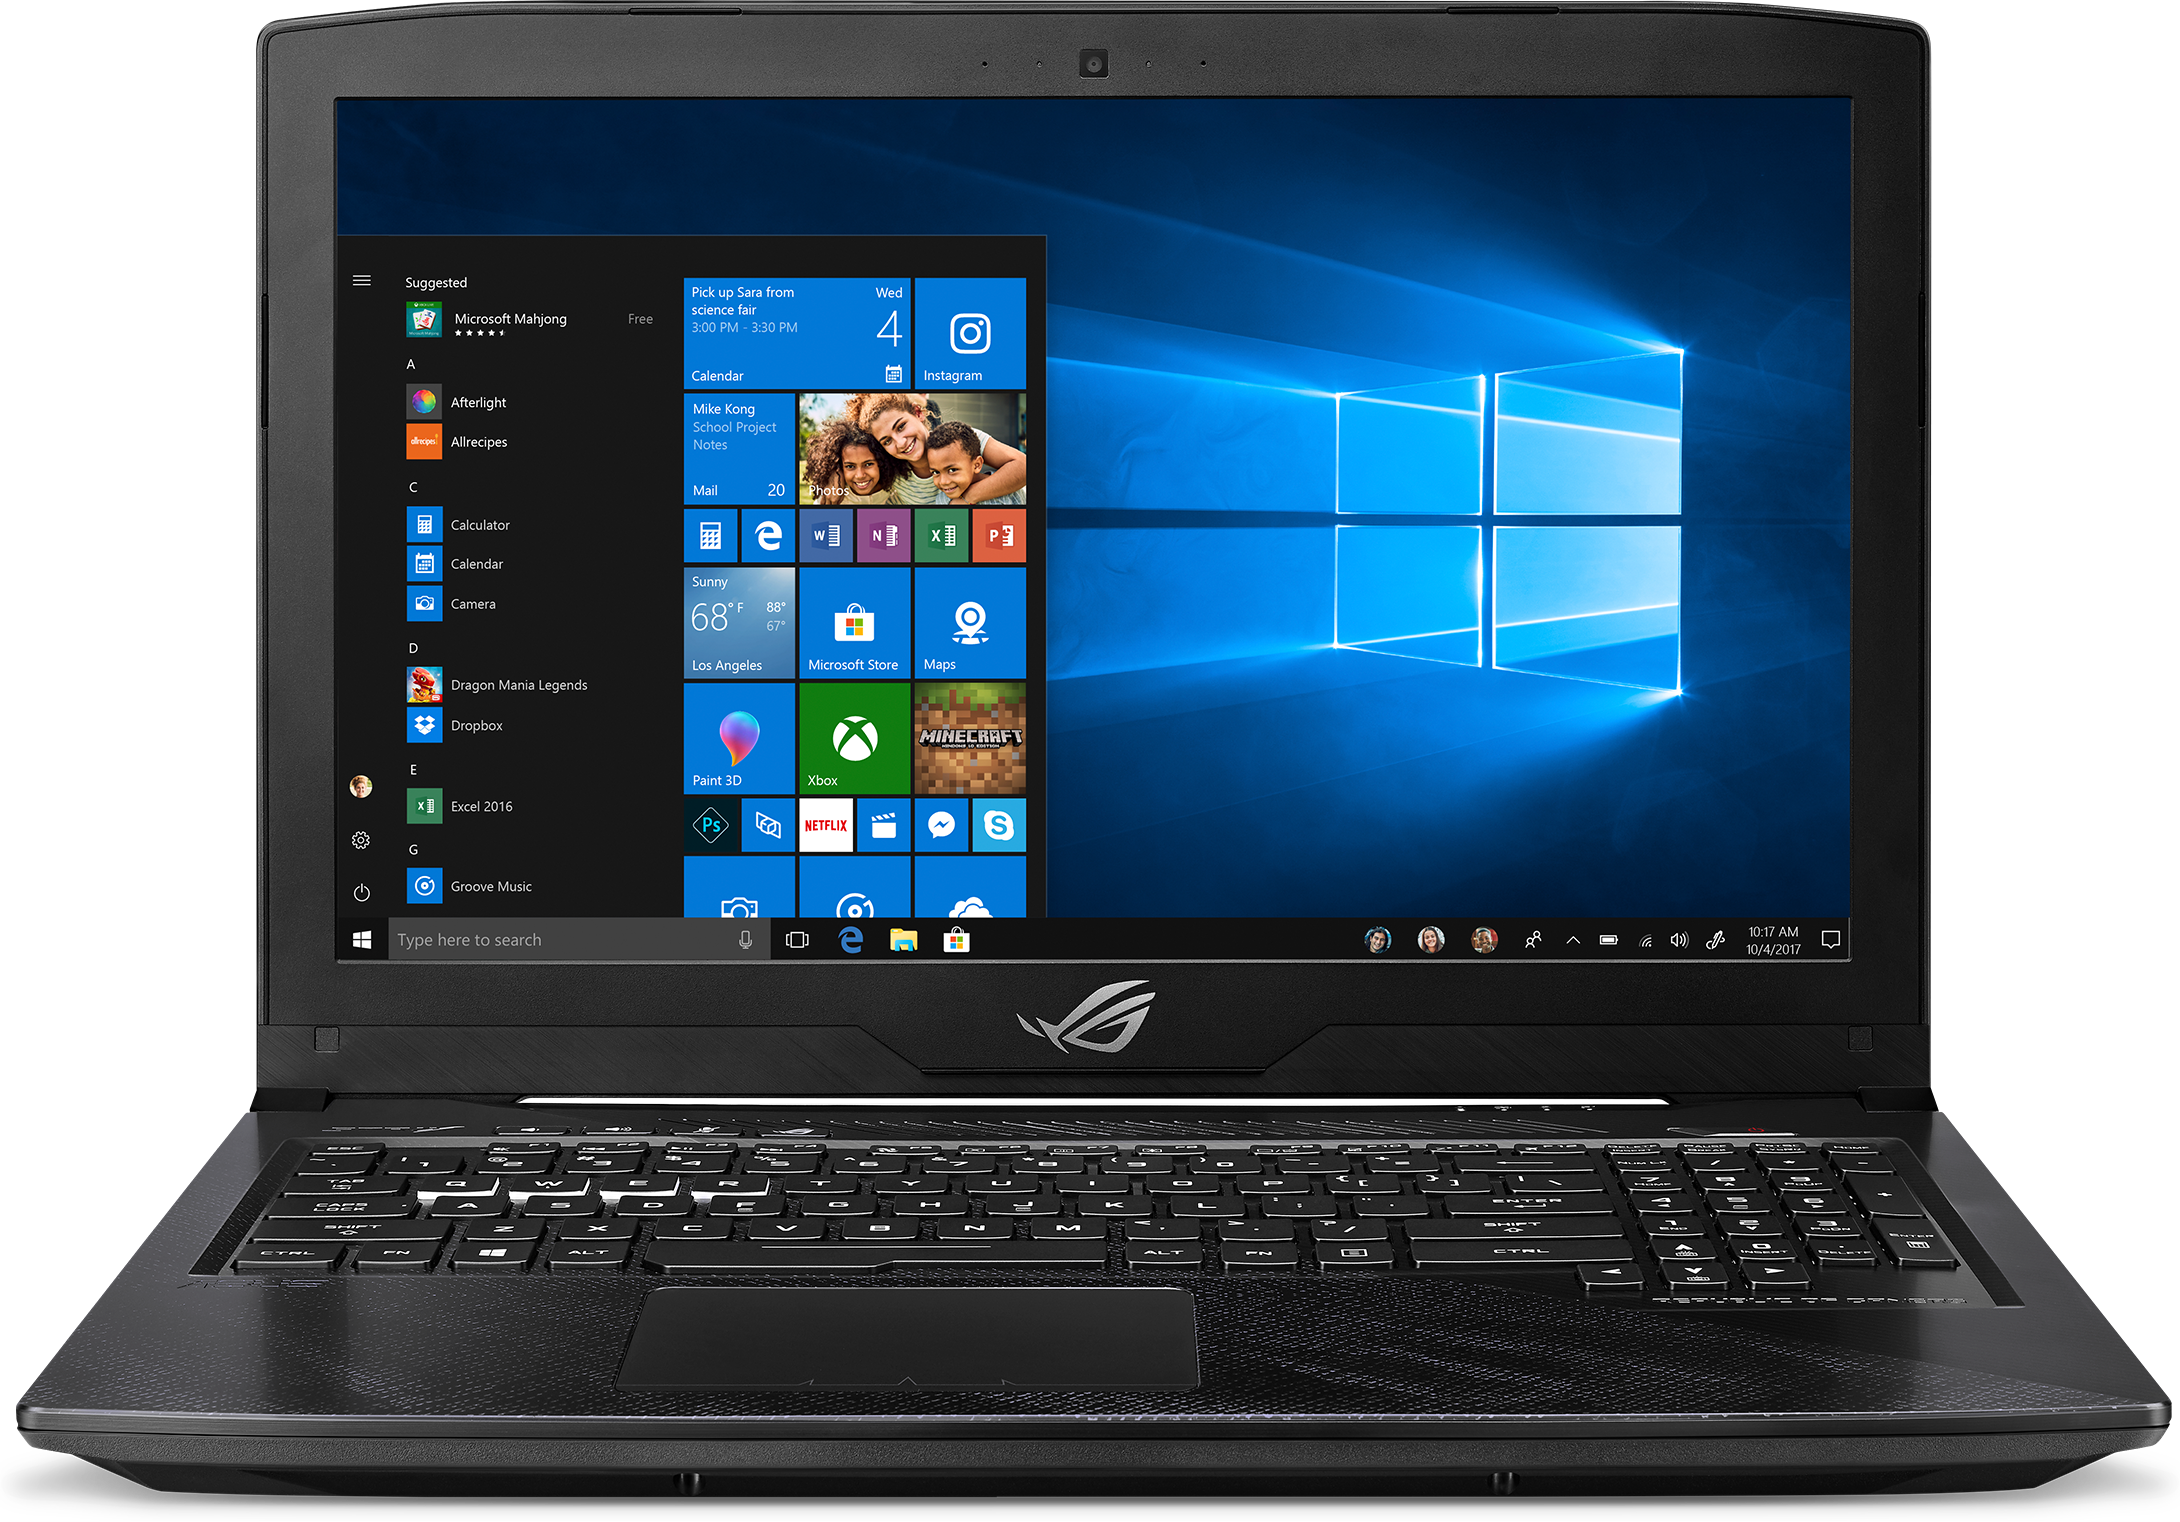 How To Turn On Keyboard Light Windows 10 Asus how to turn on